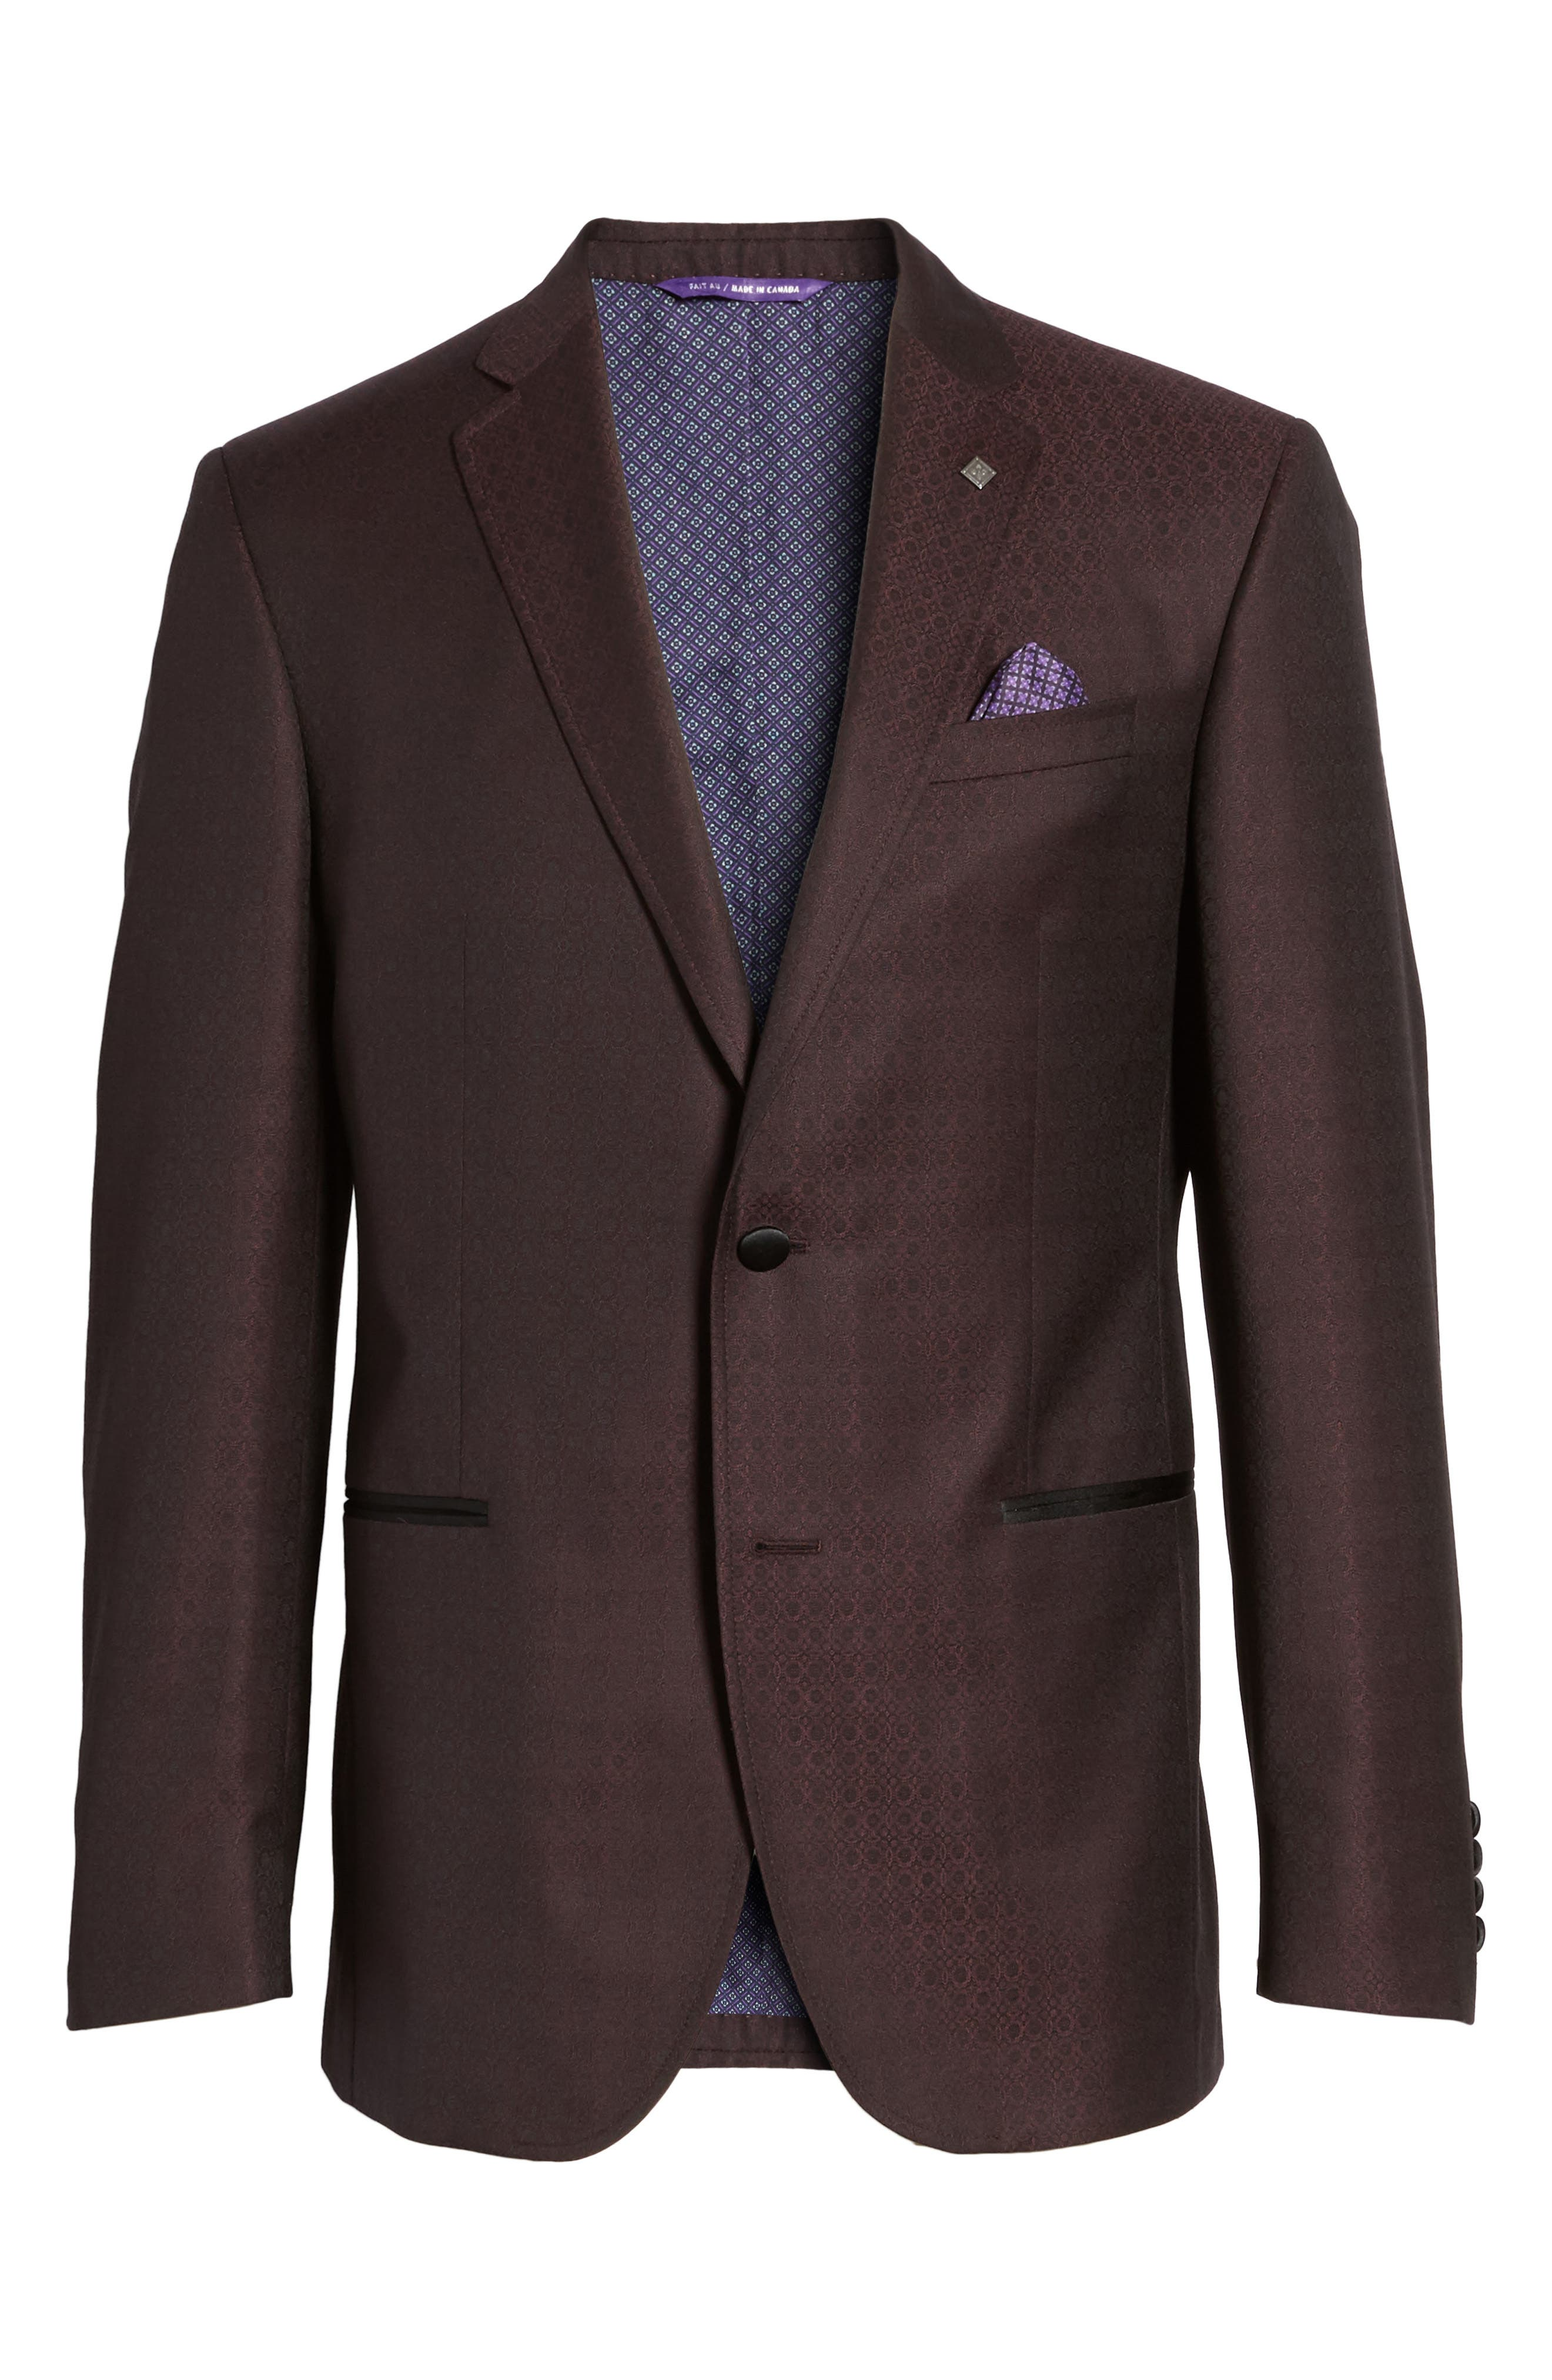 Jack Trim Fit Wool Dinner Jacket,                             Alternate thumbnail 6, color,                             Burgundy